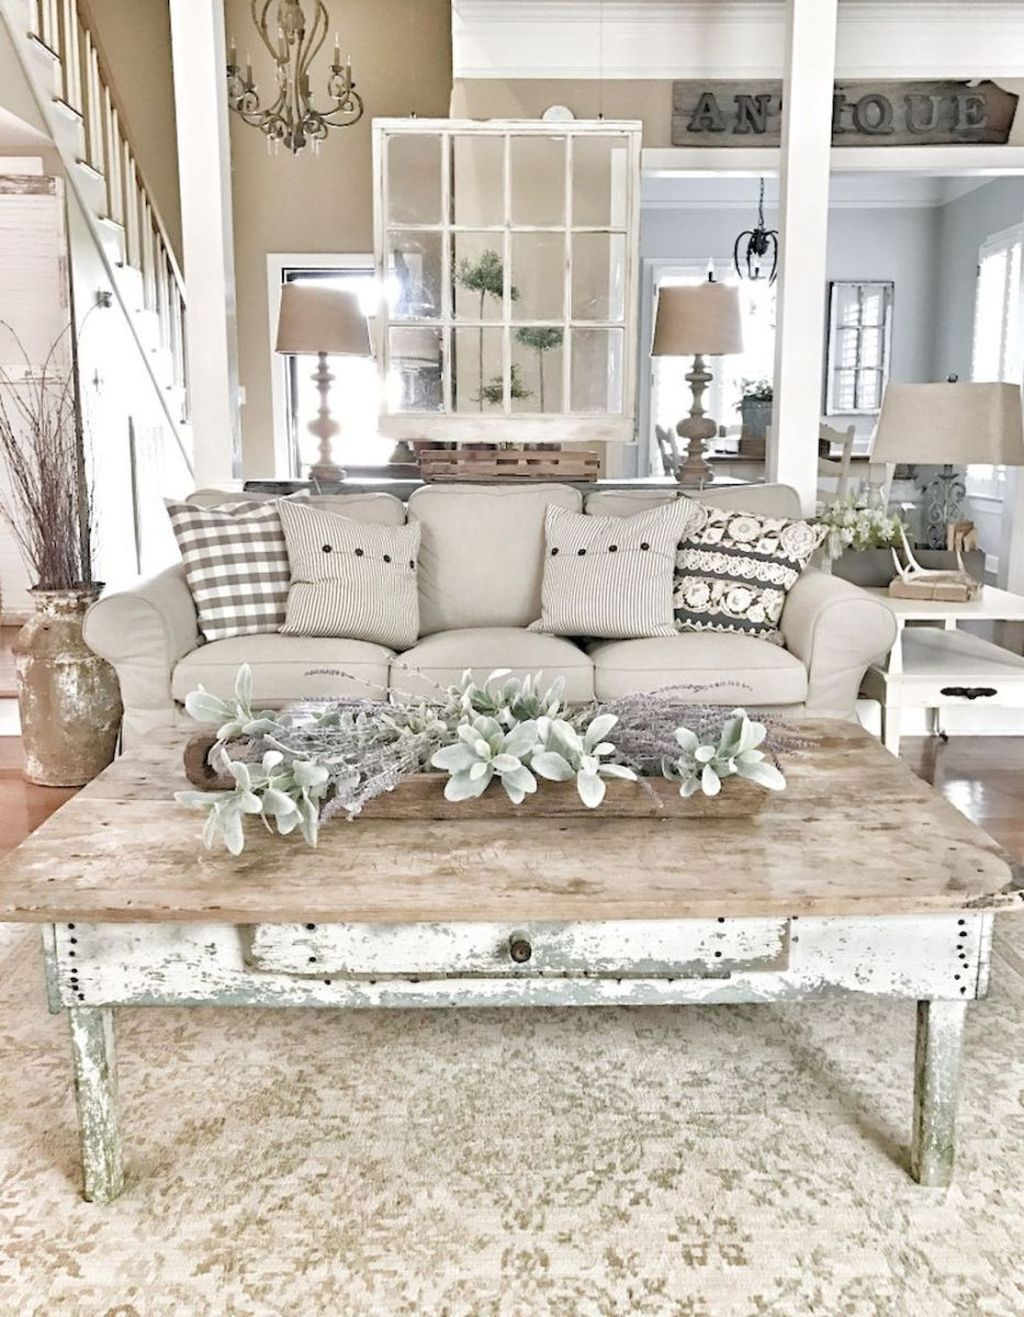 47 Cozy French Country Living Room Decor Ideas   Pinterest   French ...